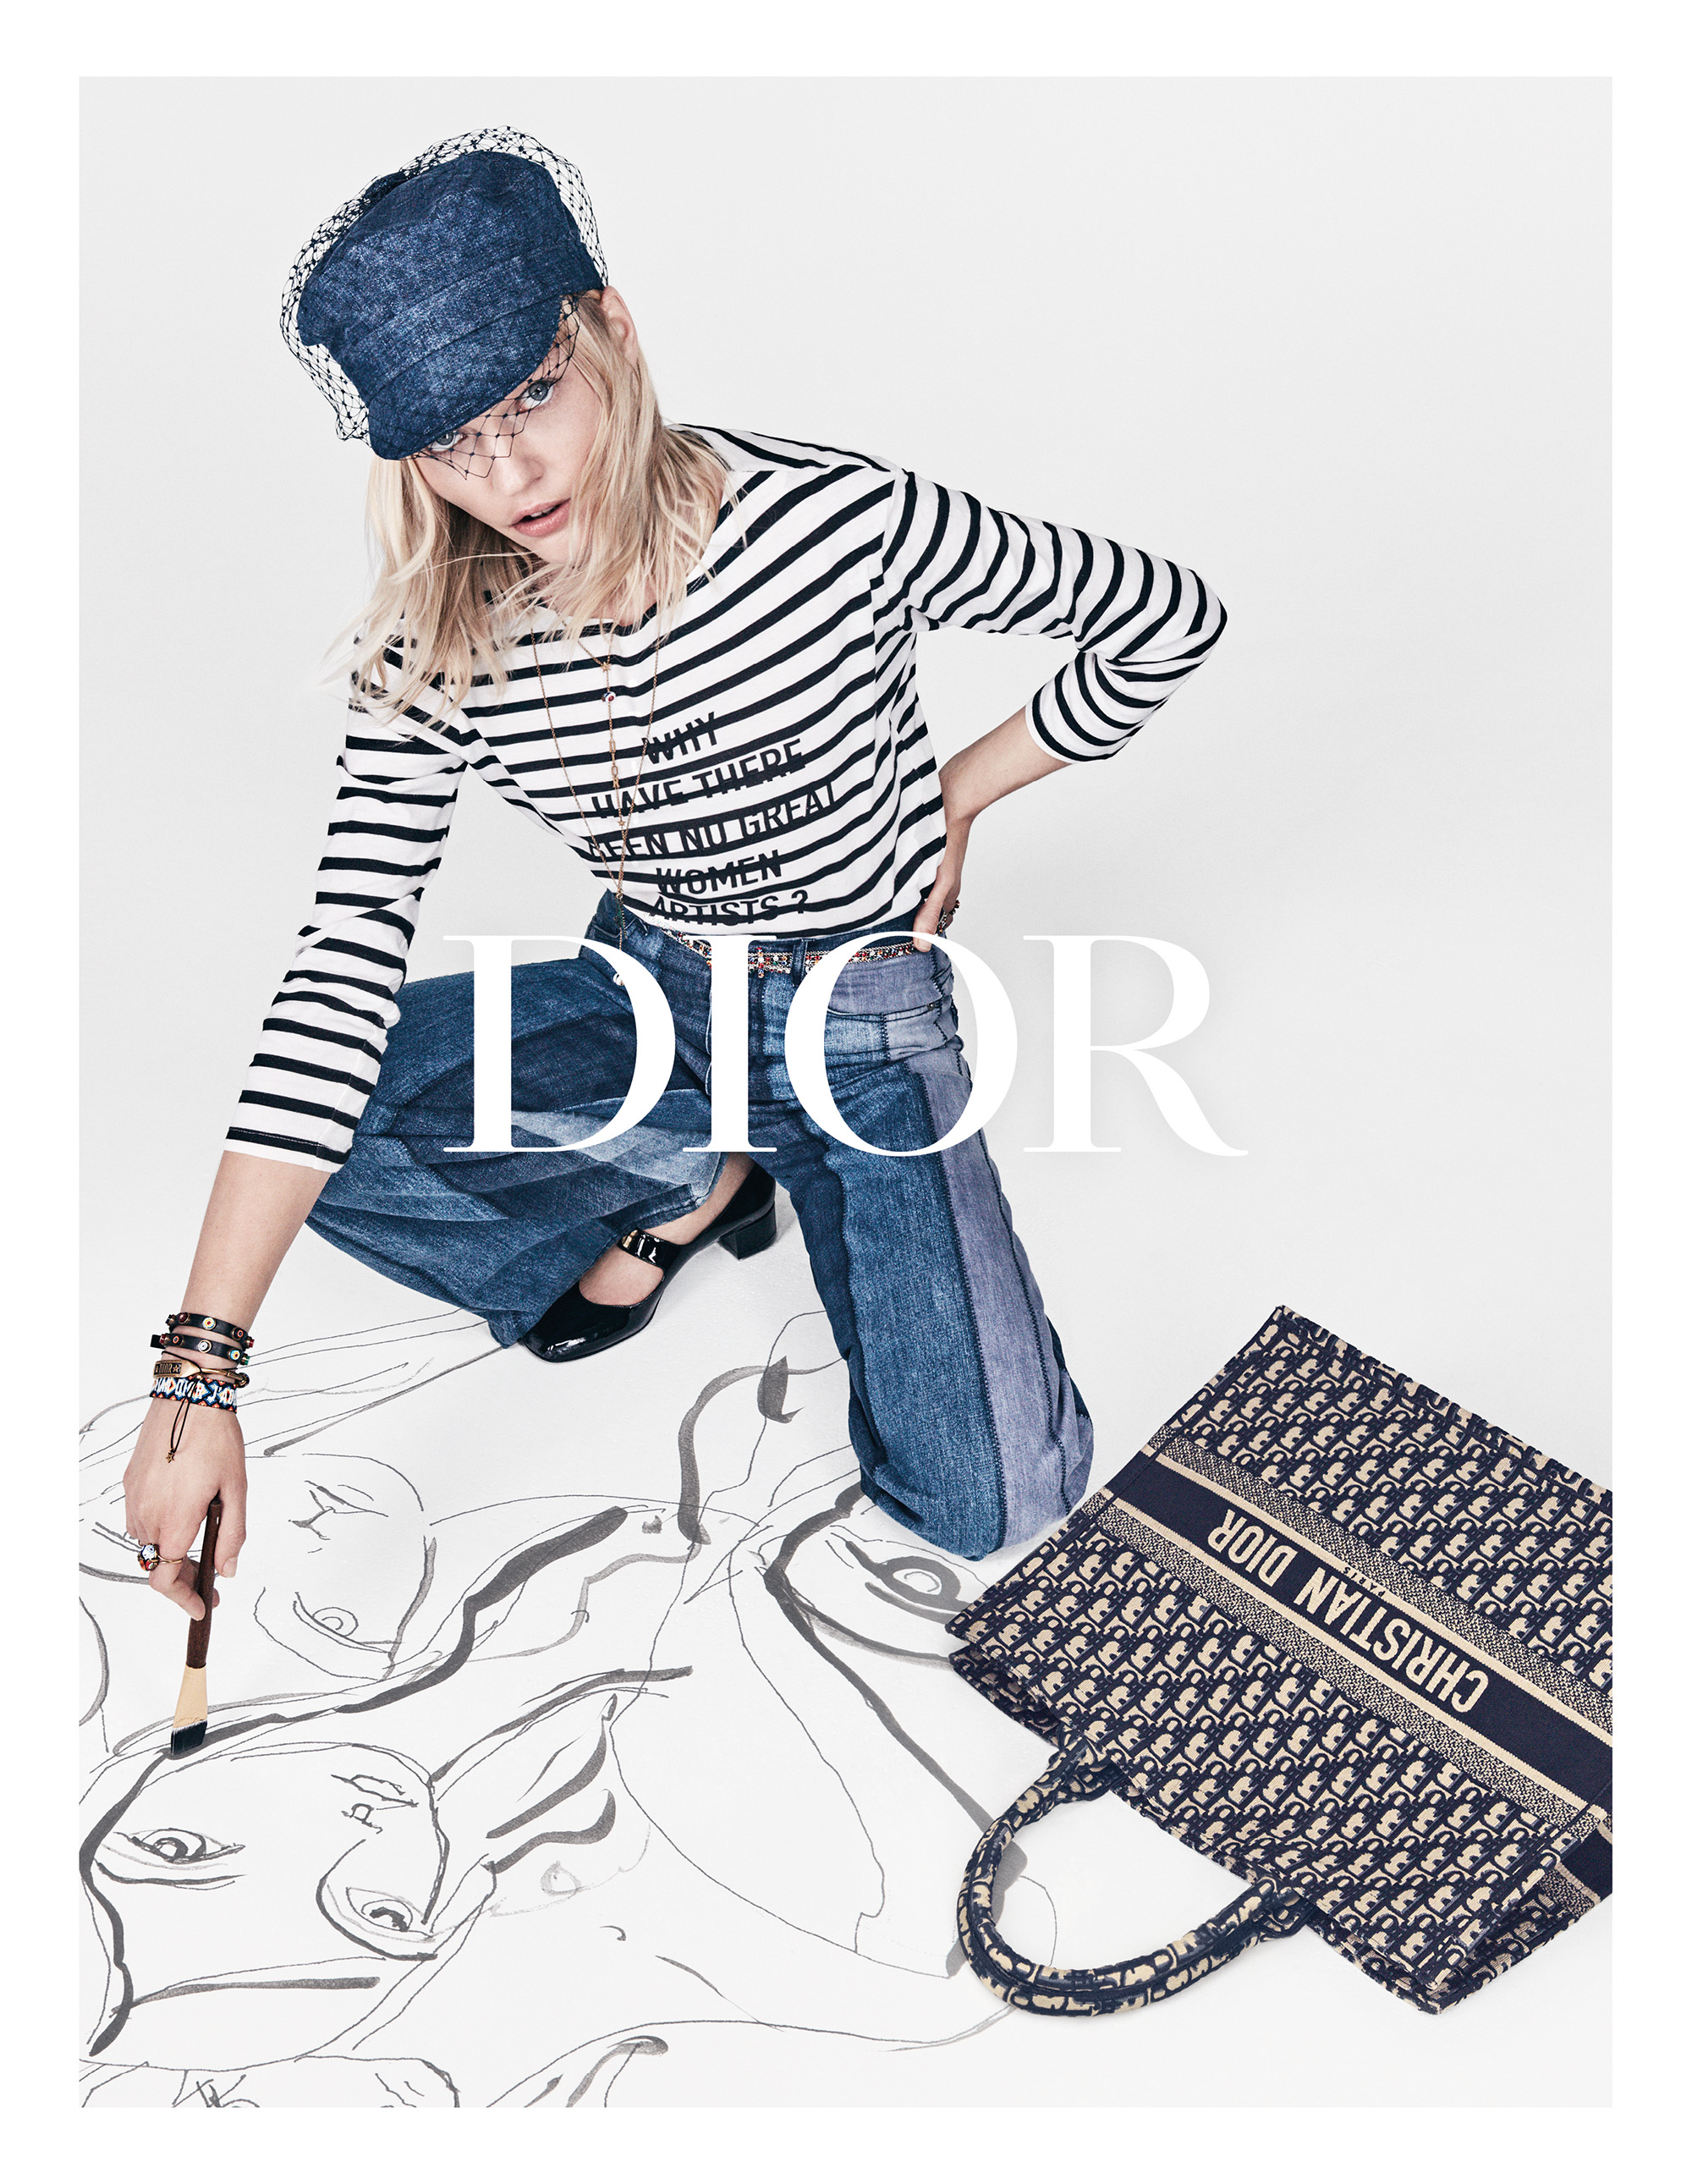 dior-spring-summer-2018-ad-campaign-2-1514919590